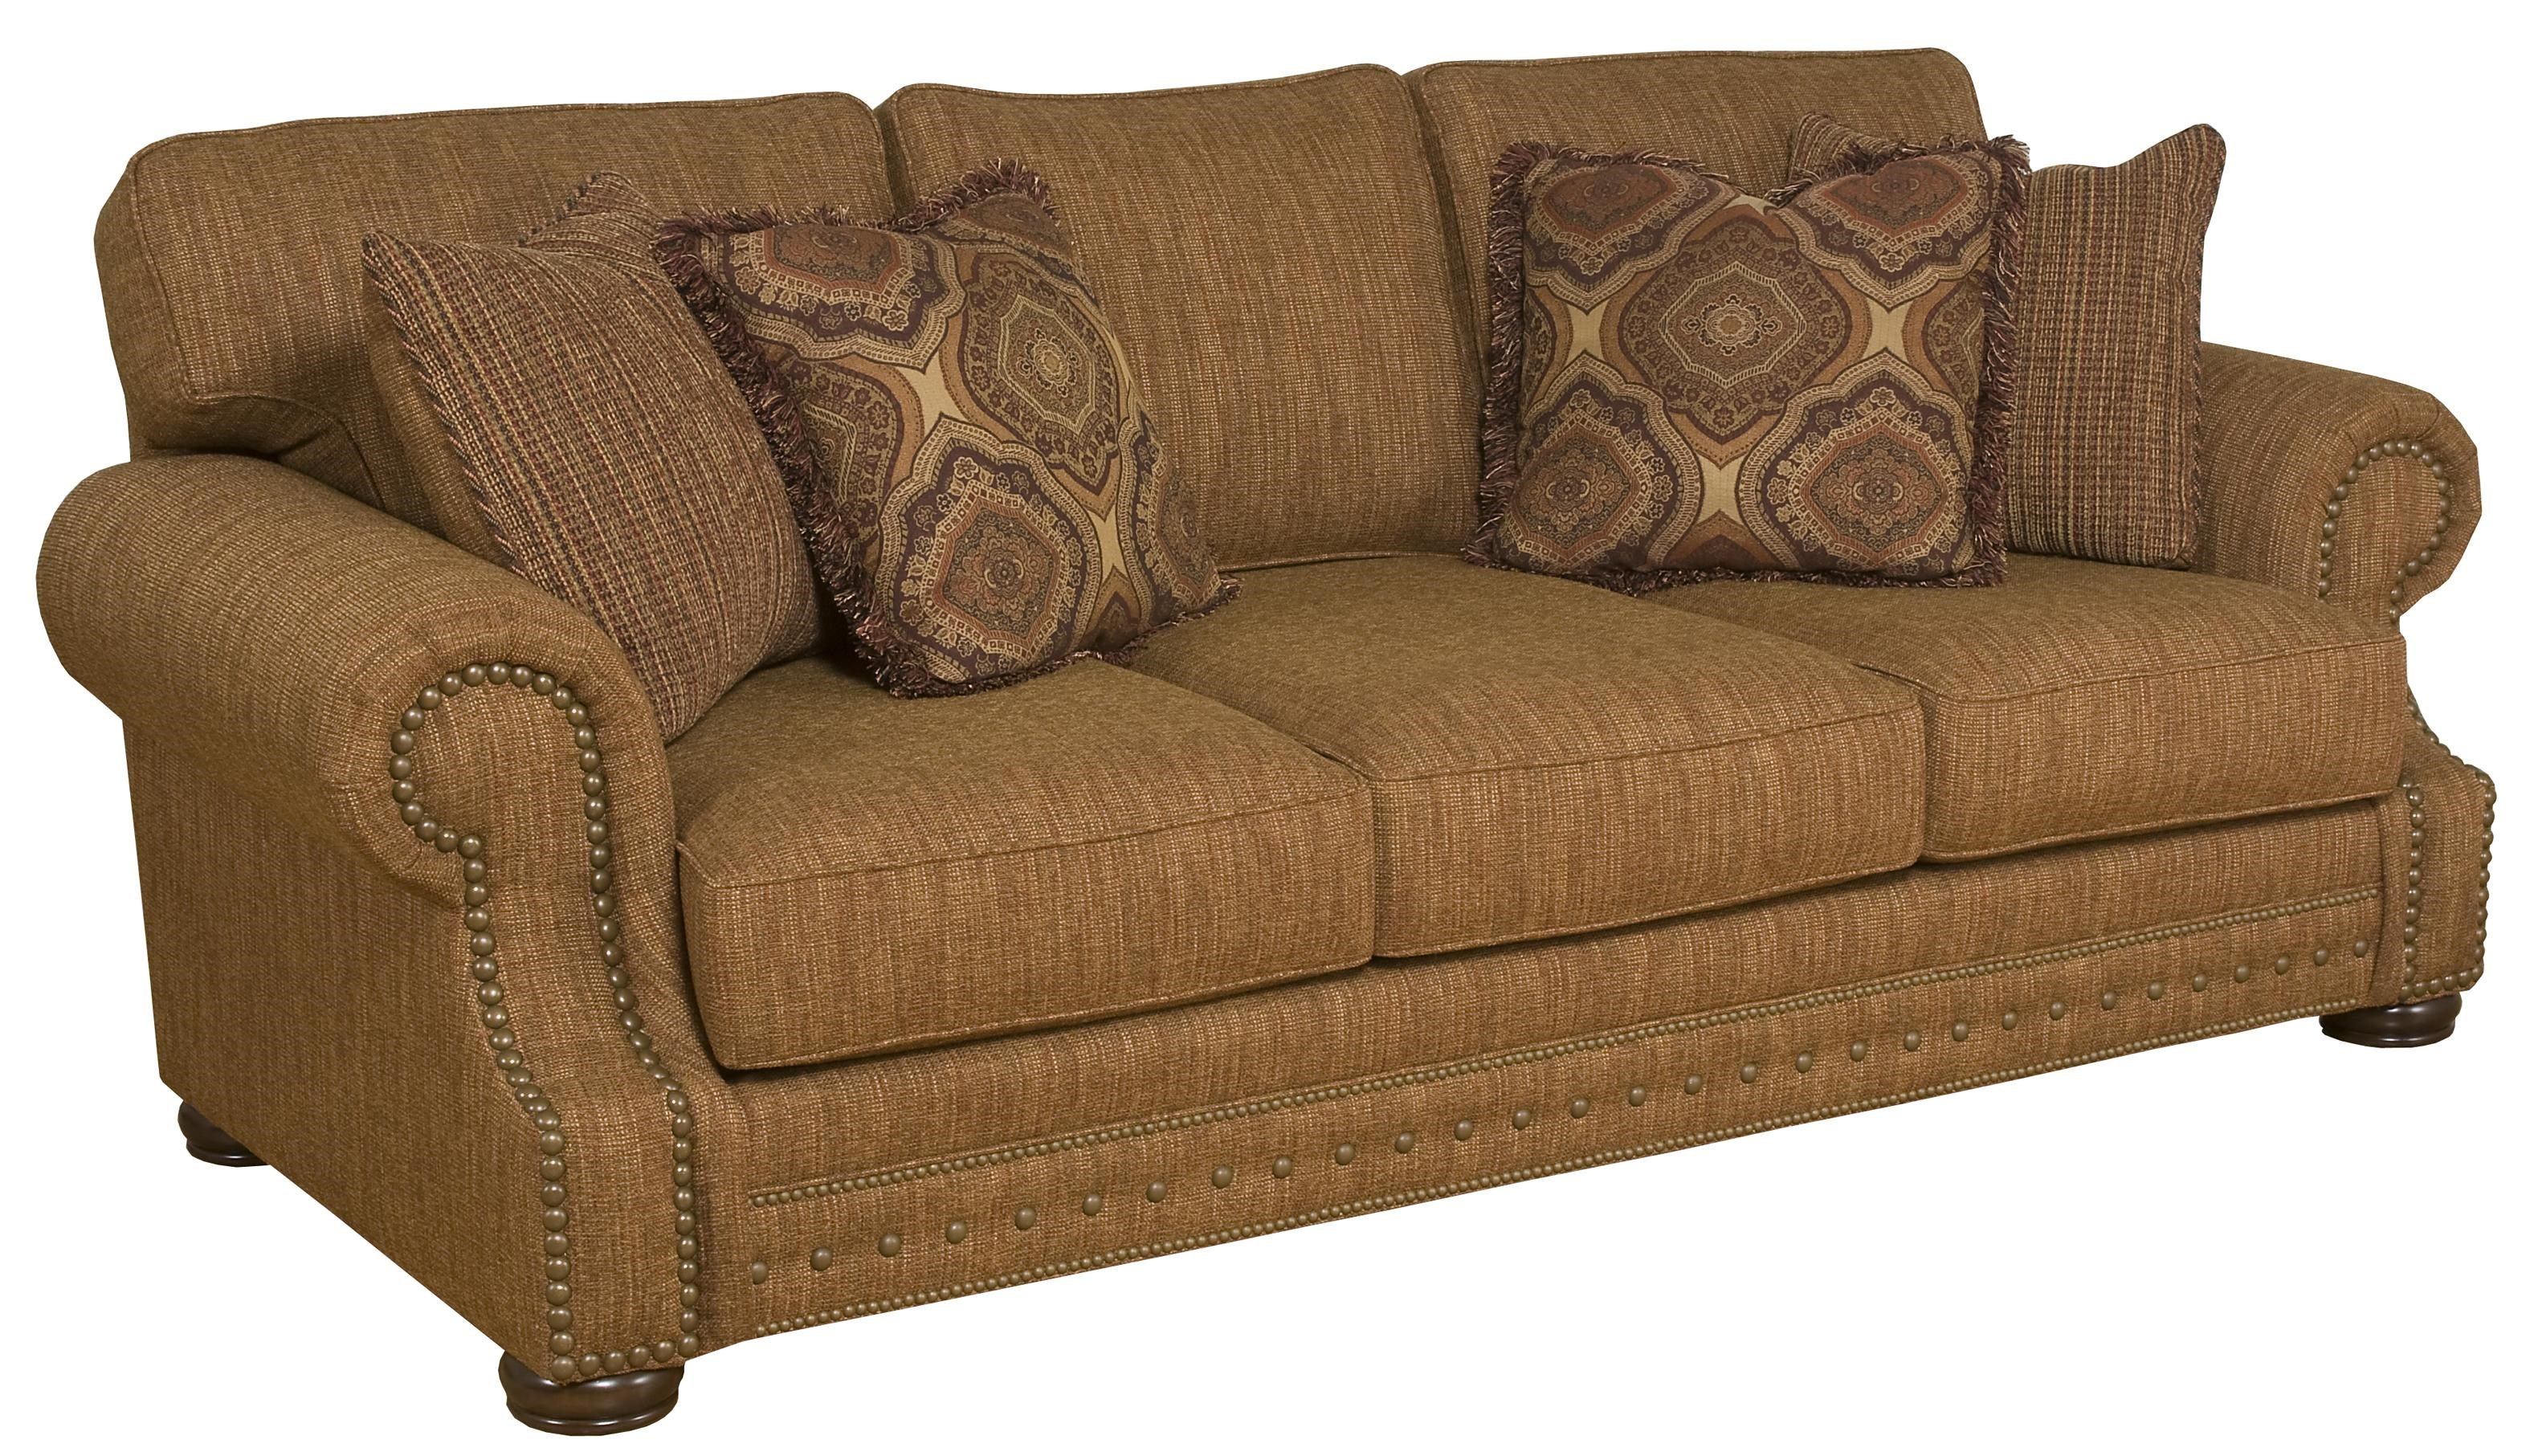 King Hickory Edward Stationary Sofa with Rolled Arms Zak's Fine Furniture Sofa Tri Cities